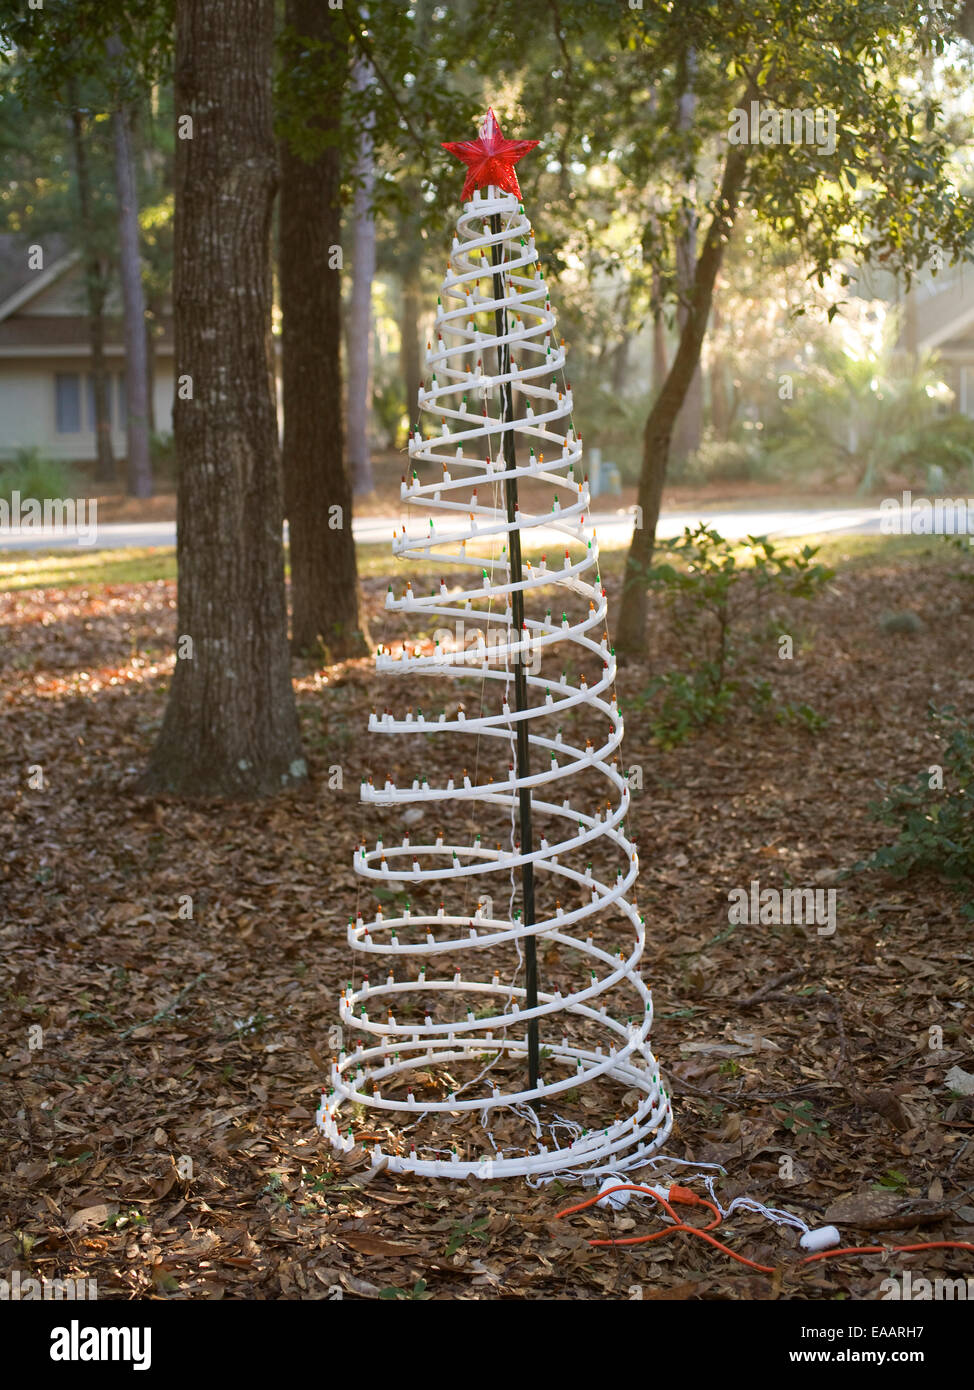 Fake Christmas tree in yard in the South - Stock Image